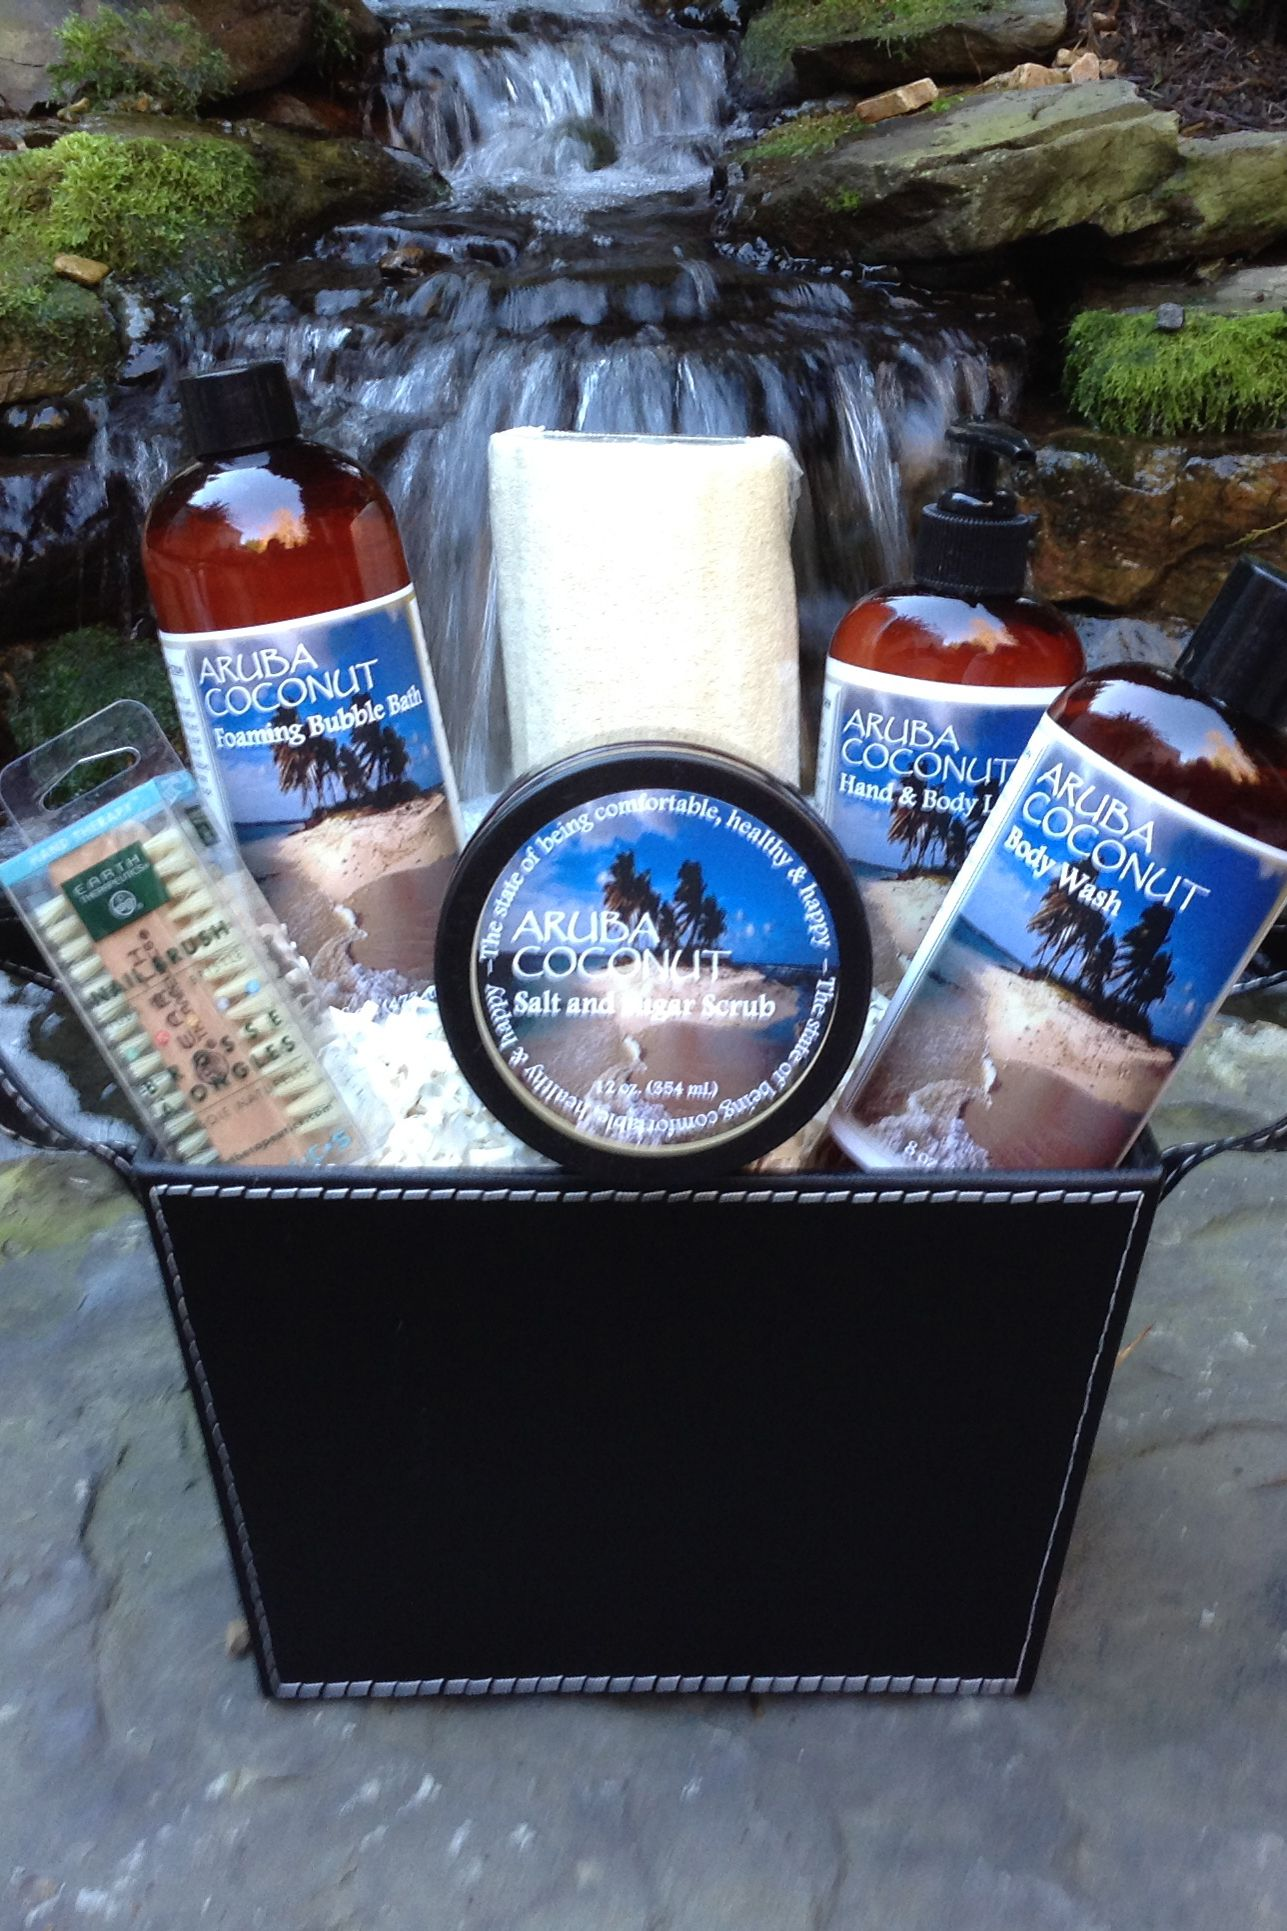 Aruba Coconut Bath Set Spa Basket - Soak in pure bliss, this Aruba ...